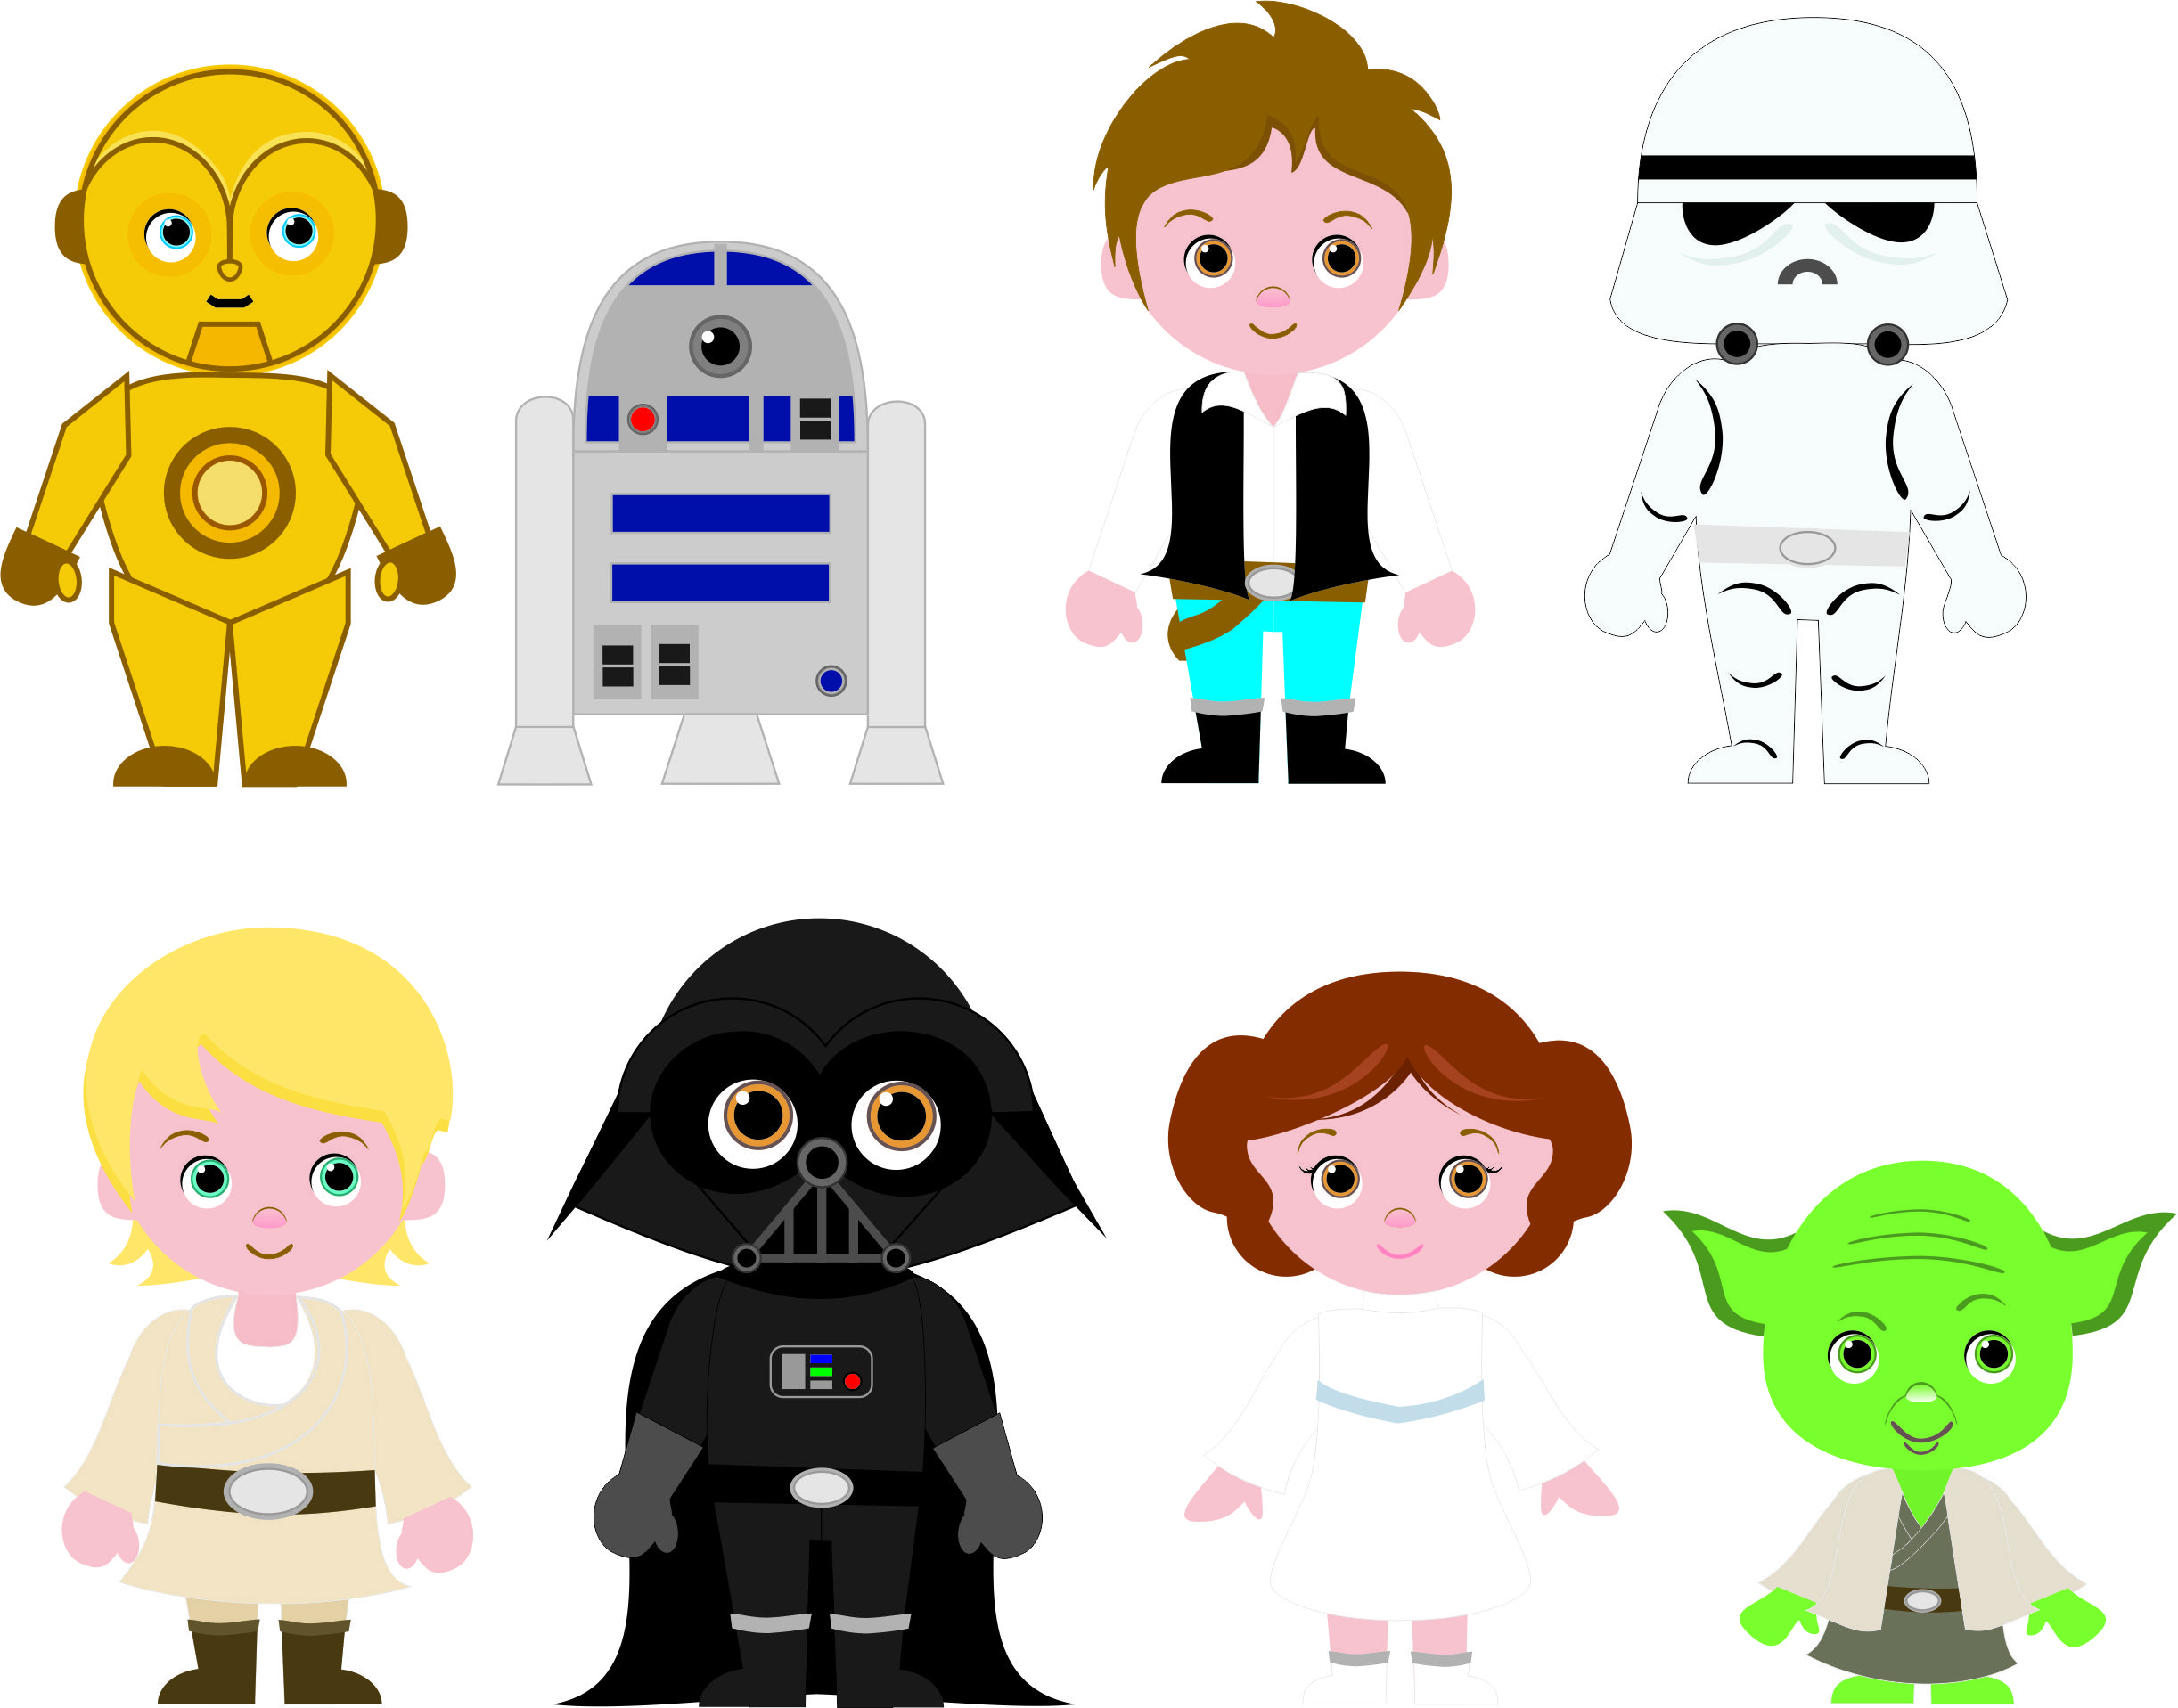 Free star wars clipart images picture free download Star Wars Clipart Free | Free download best Star Wars Clipart Free ... picture free download